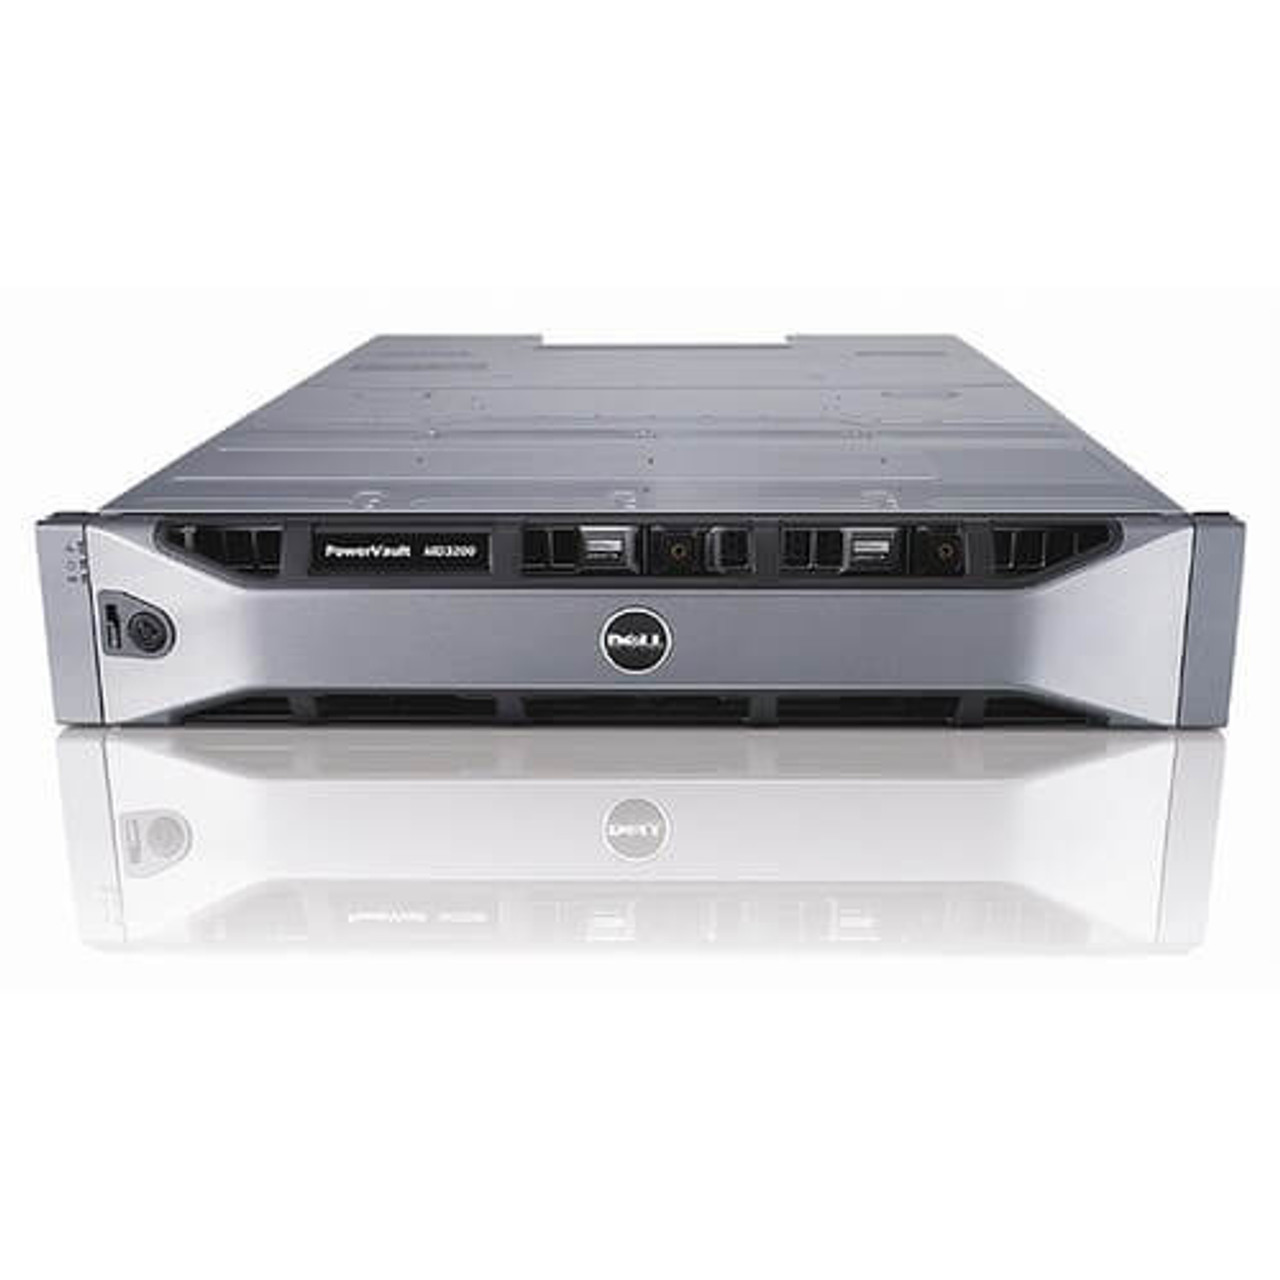 Dell Data Storage